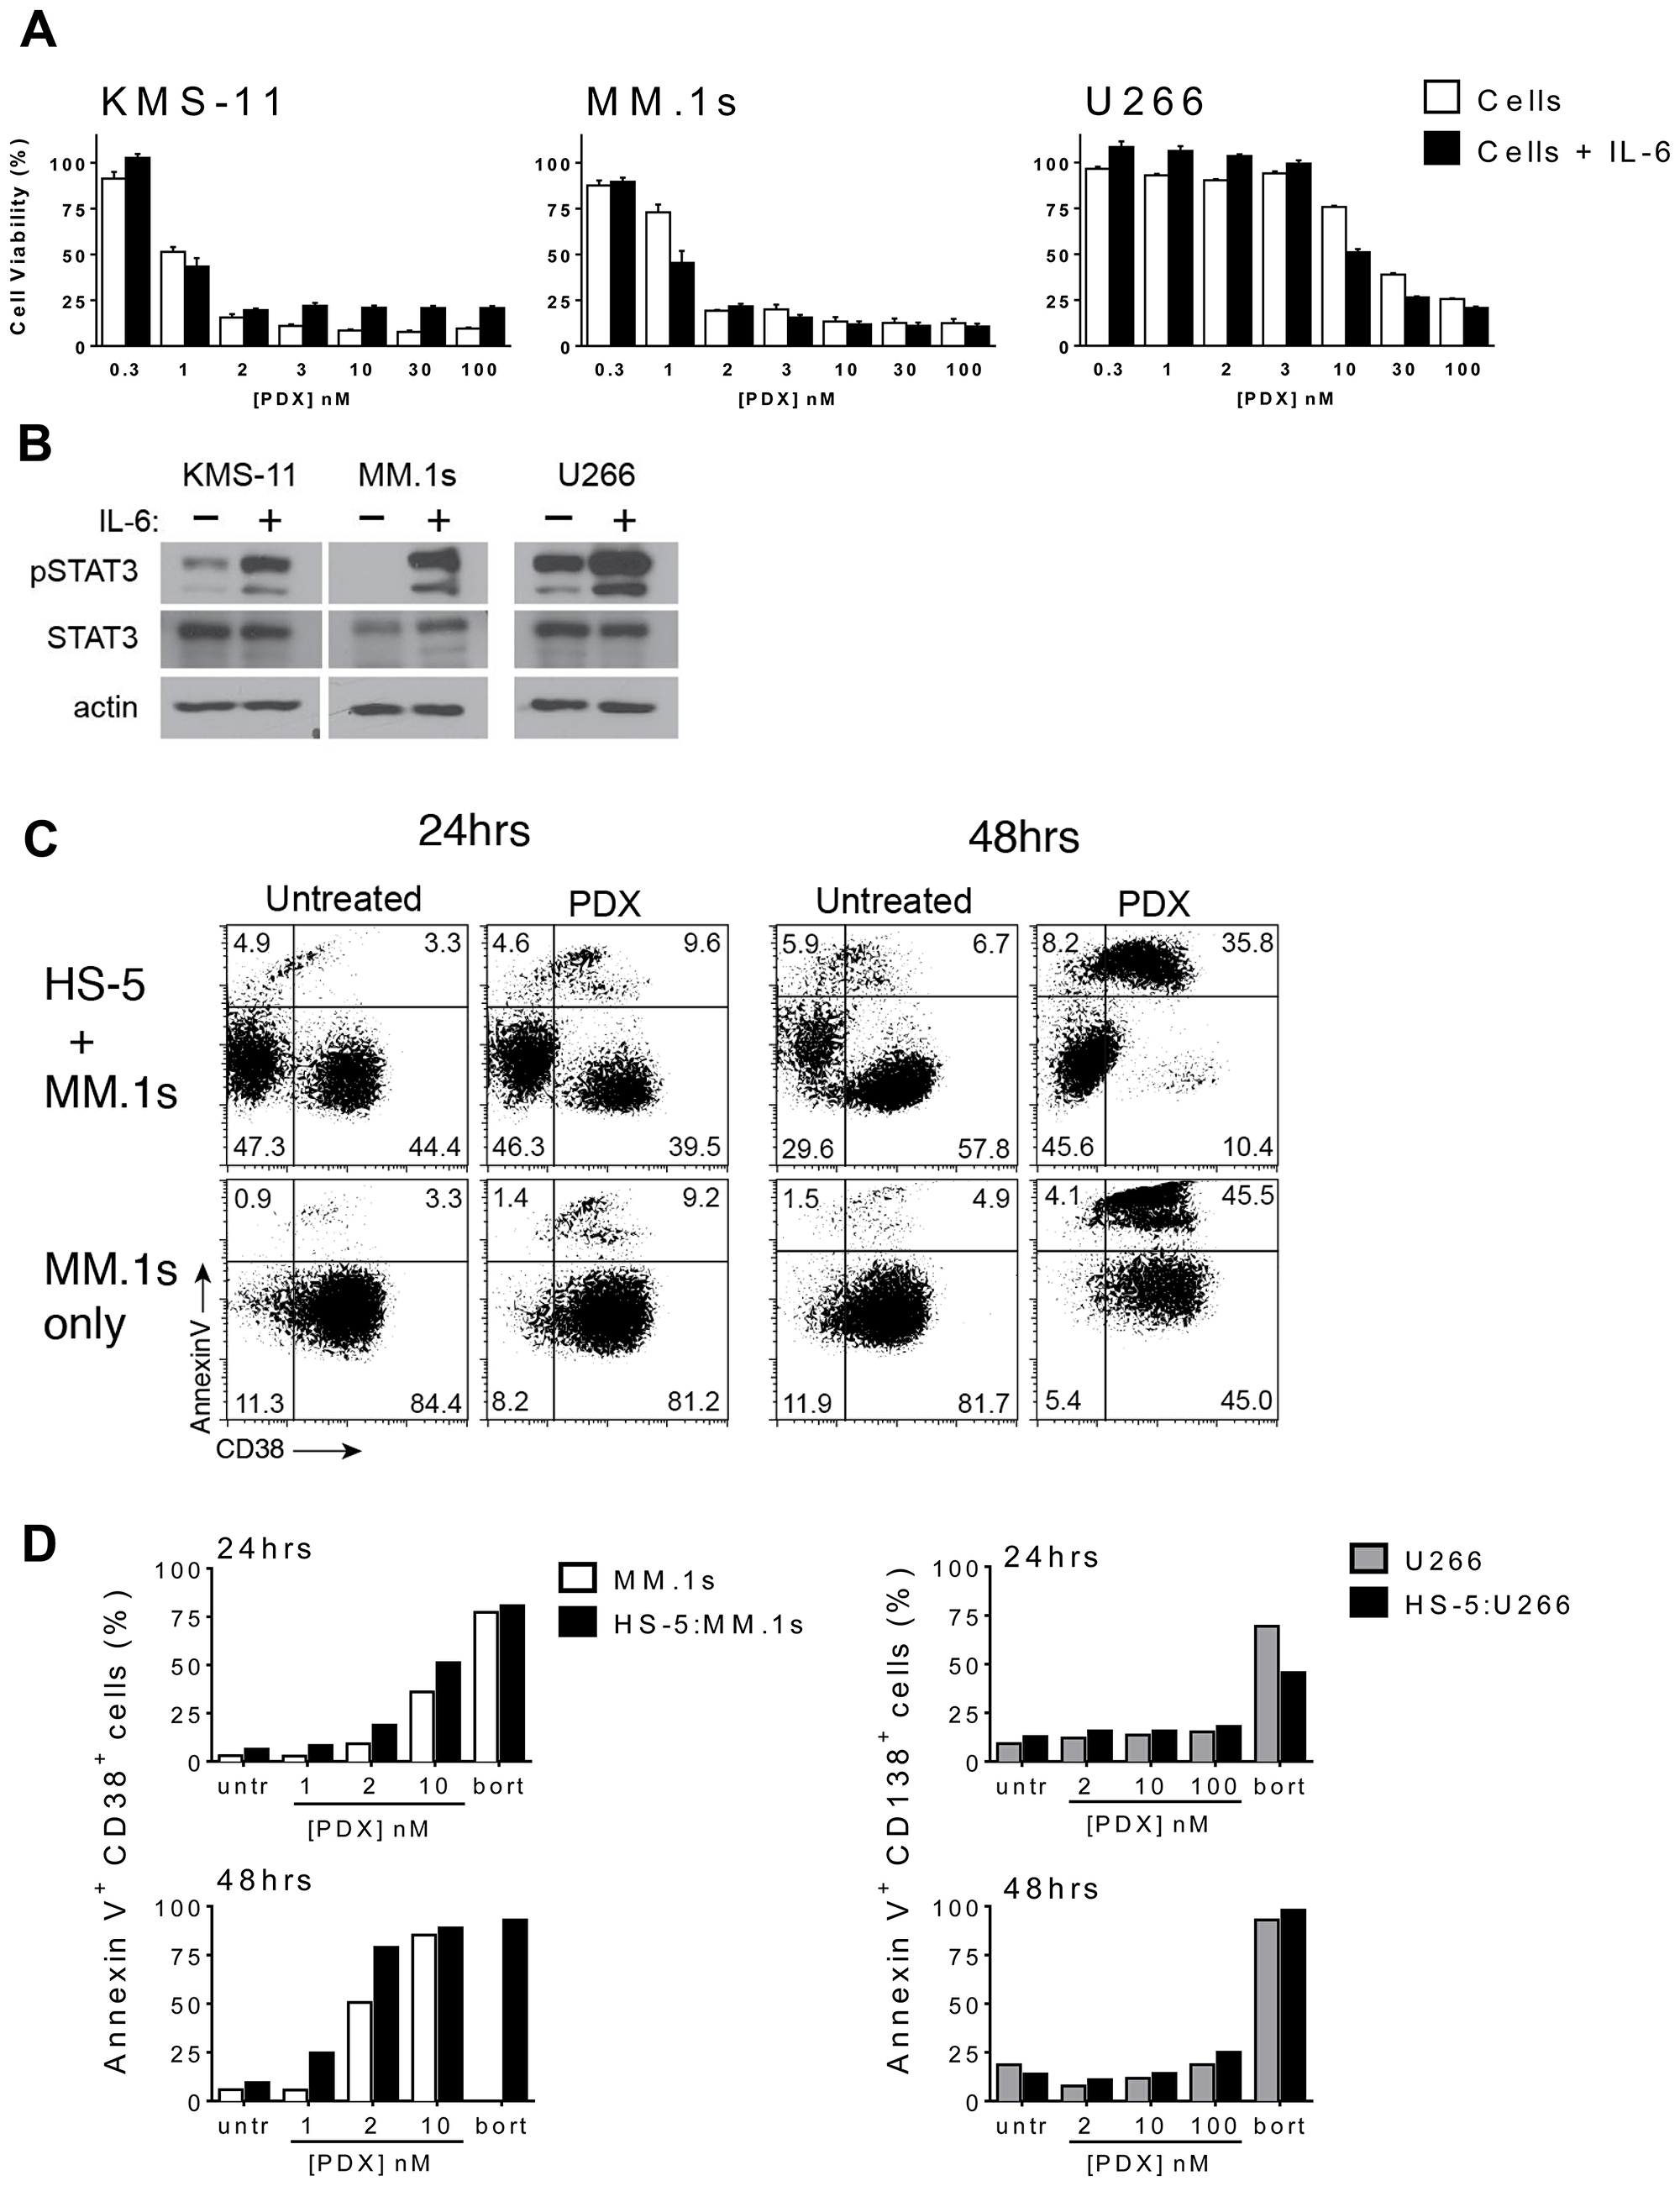 HMCLs retain sensitivity to PDX in the presence of microenvironment prosurvival factors.